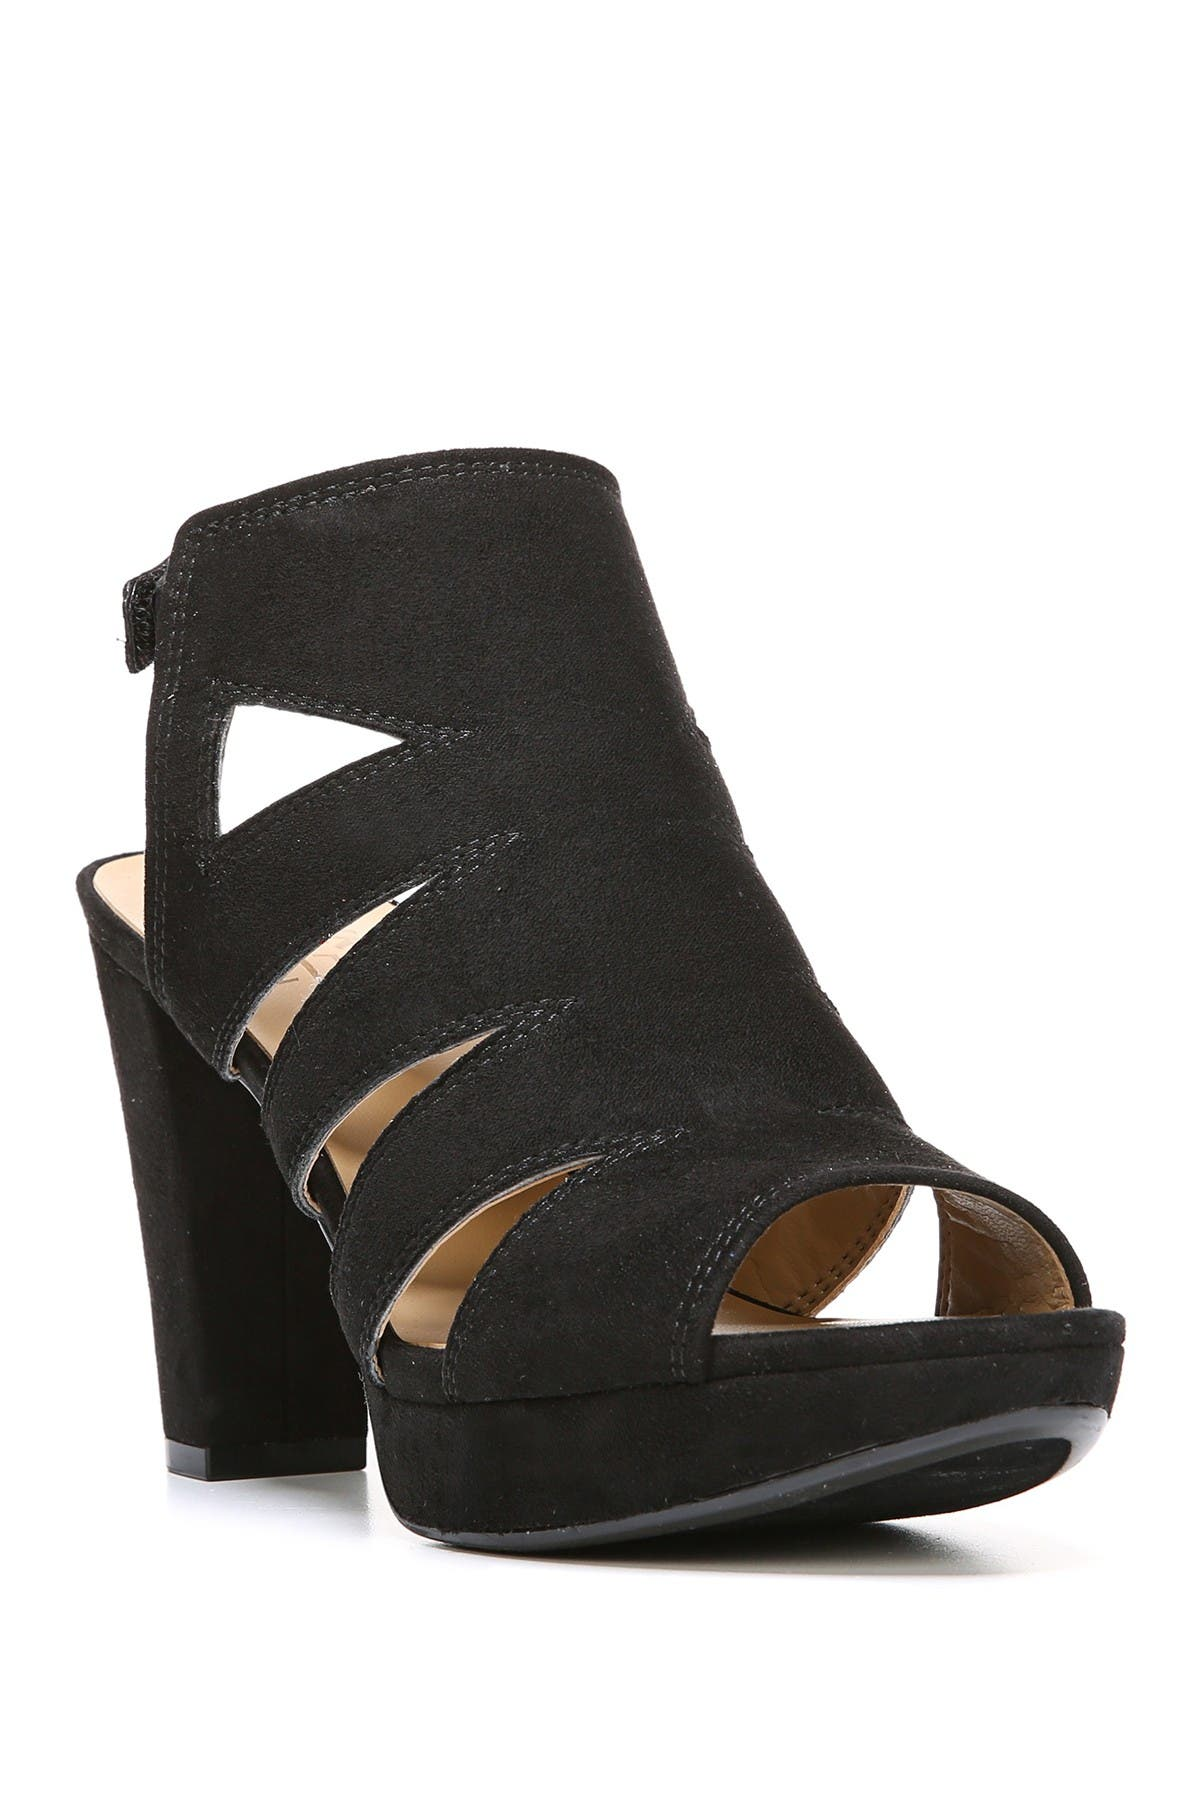 Image of Naturalizer Etta Slingback Sandal - Wide Width Available